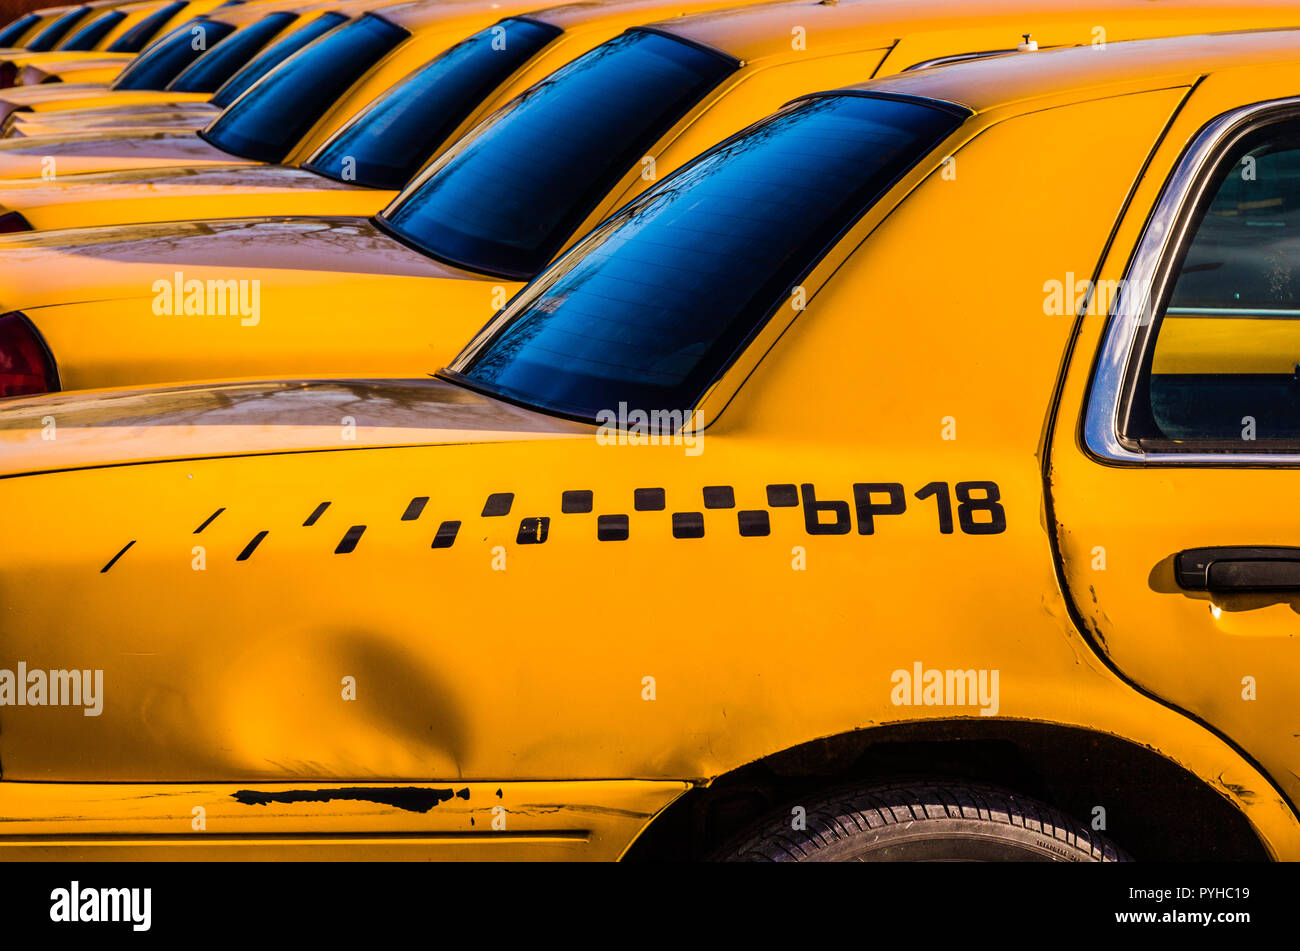 Yellow Cabs Long Island City Queens _ New York, New York, USA - Stock Image